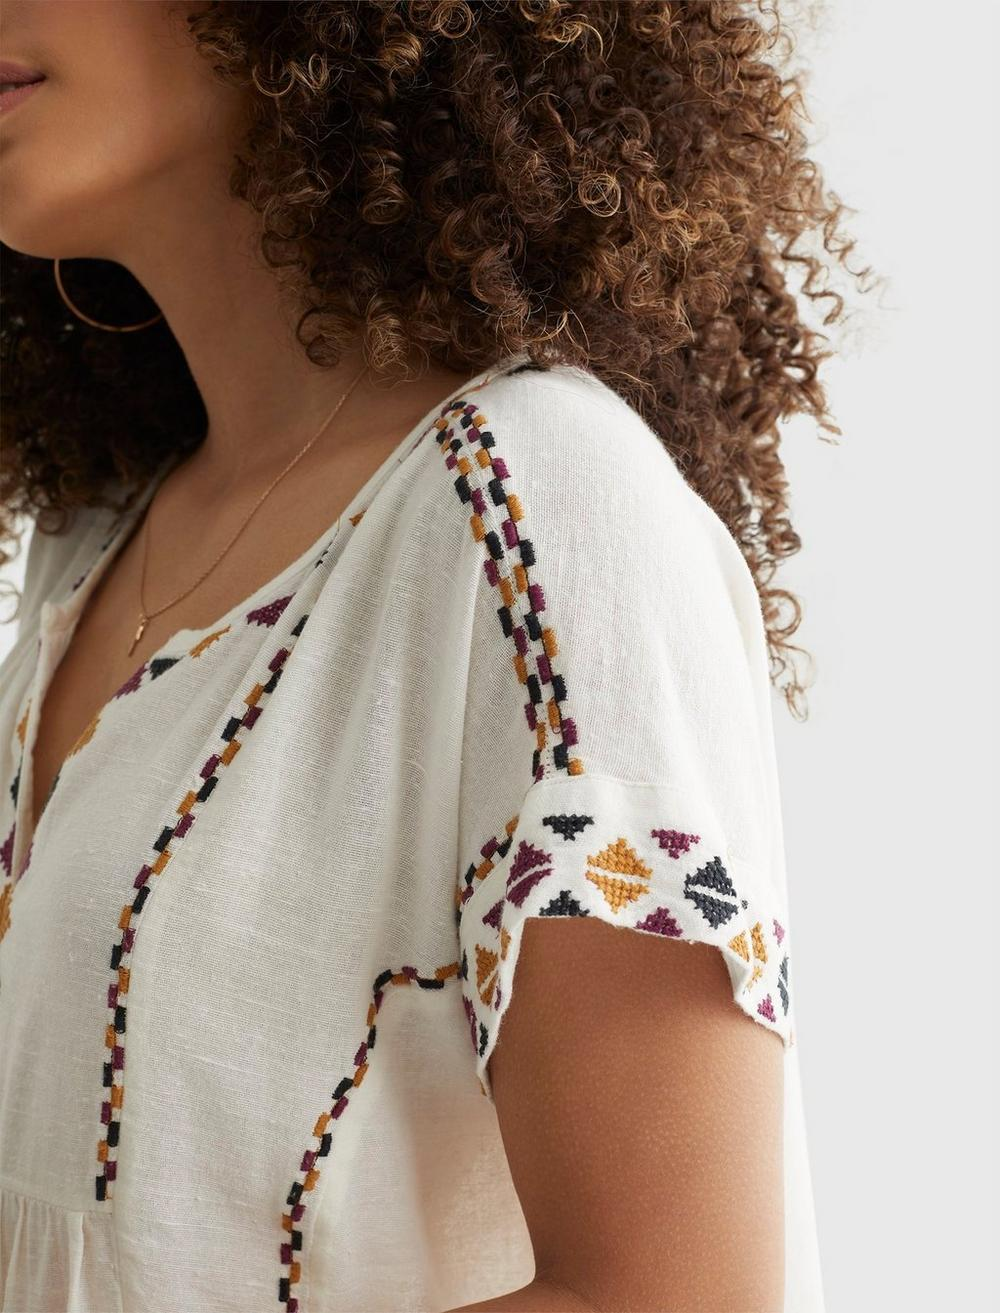 SHORT SLEEVE EMBROIDERED PEASANT TOP, image 5